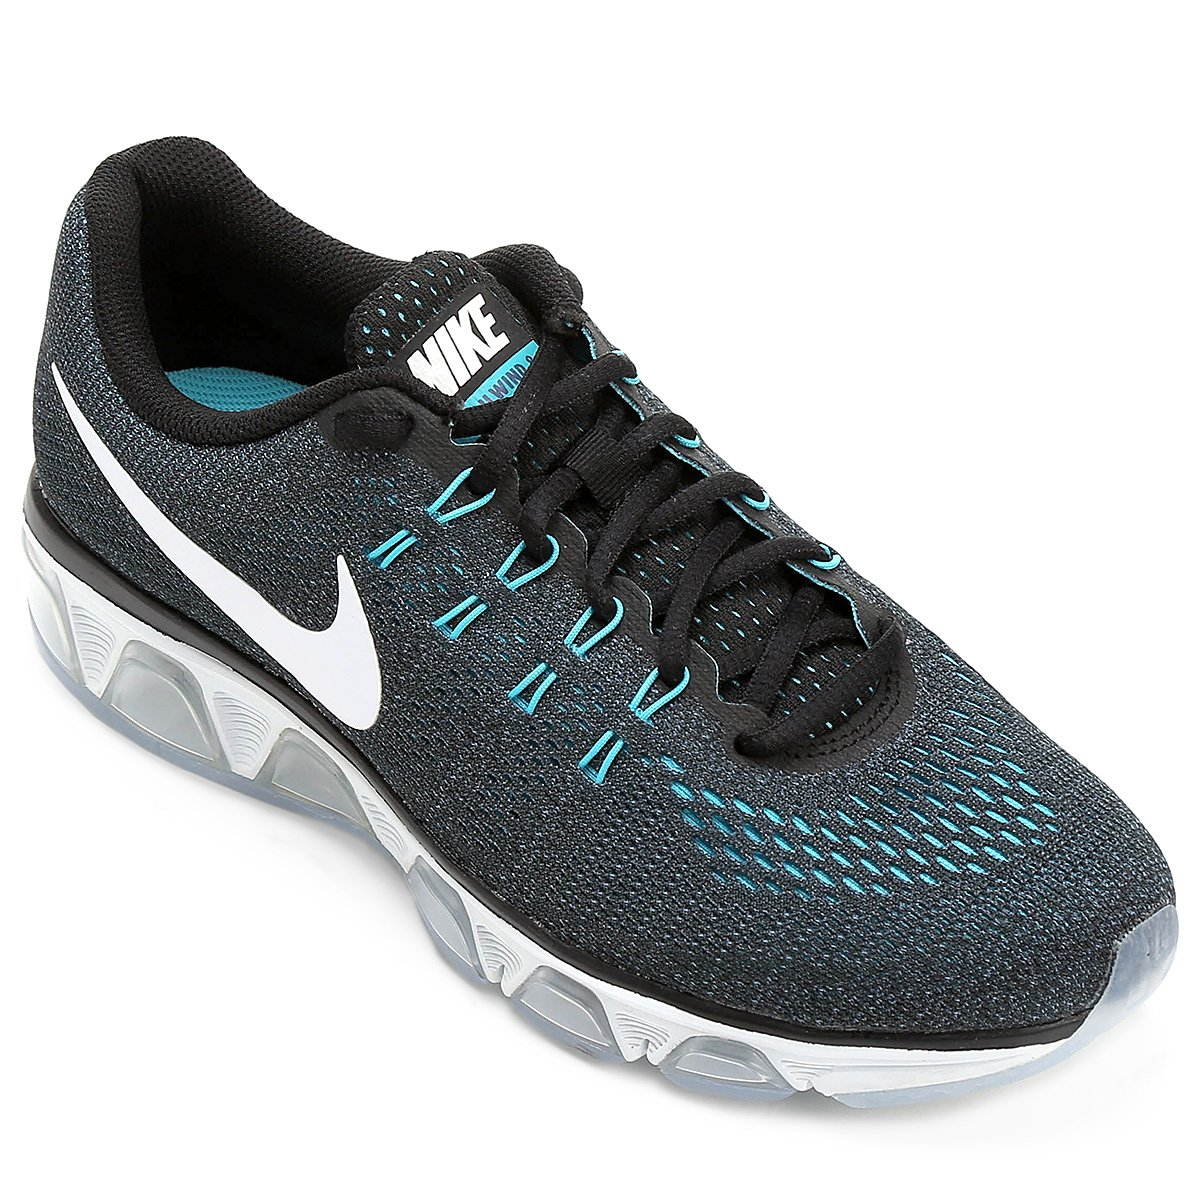 Air 8 Tailwind Tênis Compre Masculino Agora NetChaussures Nike Max fawqqv5